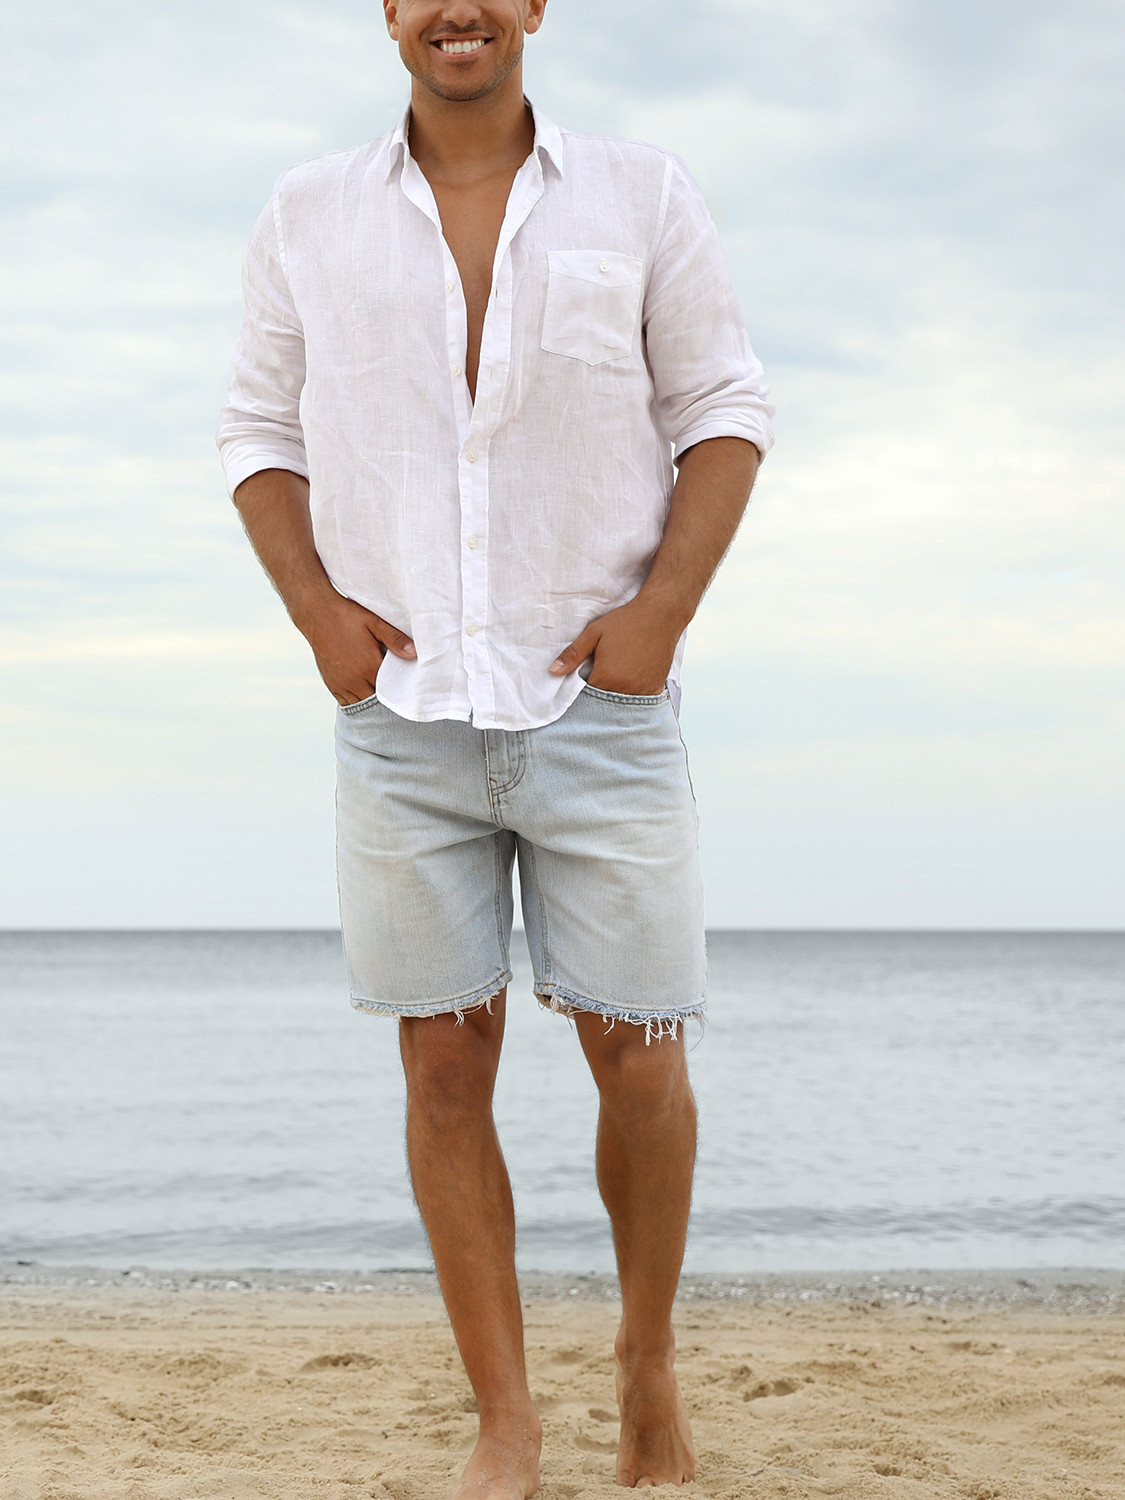 Men's outfit idea for 2021 with white linen shirt, blue denim shorts, neutral espadrilles. Suitable for spring and summer.